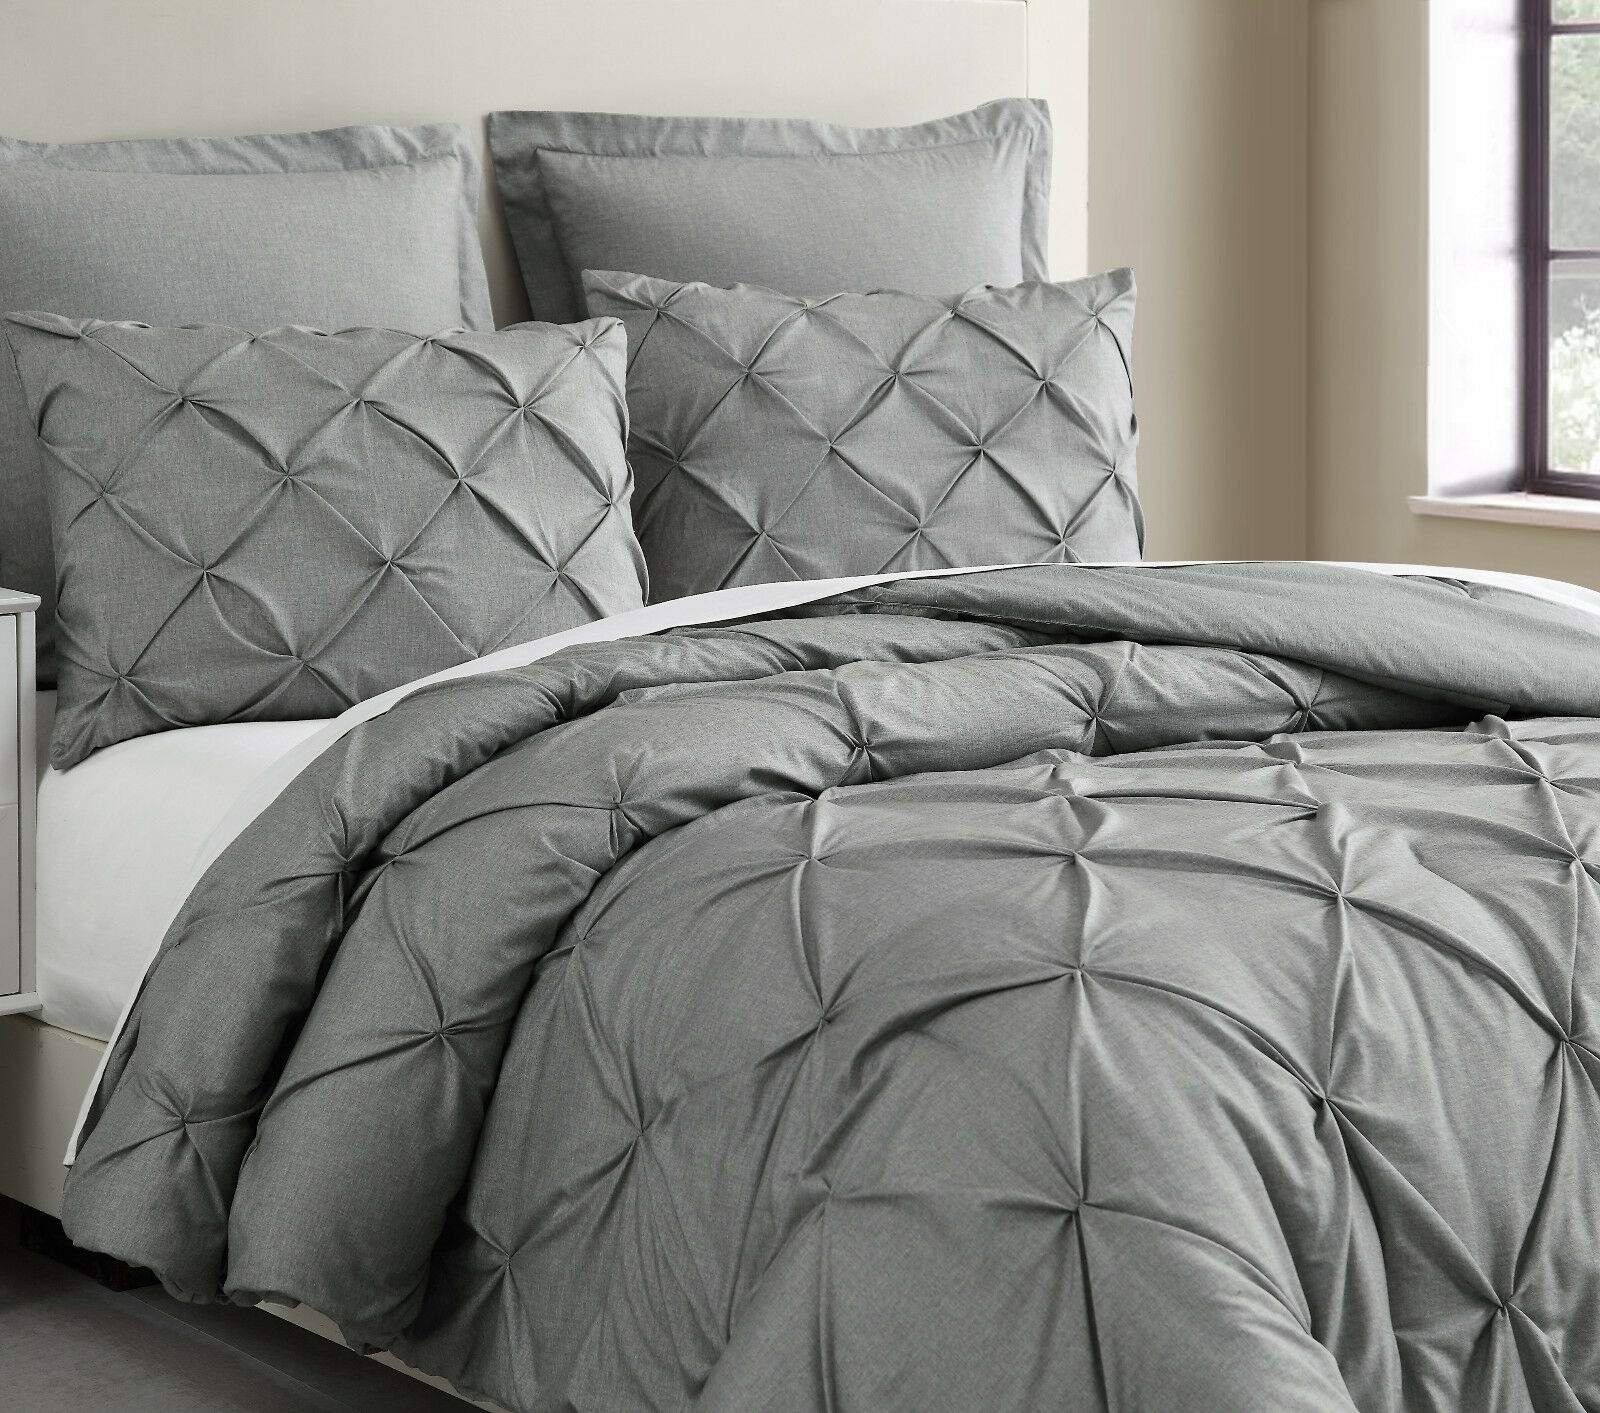 Pinch Pleat Light grigio Comforter Set Pintuch Bed Cover for All season